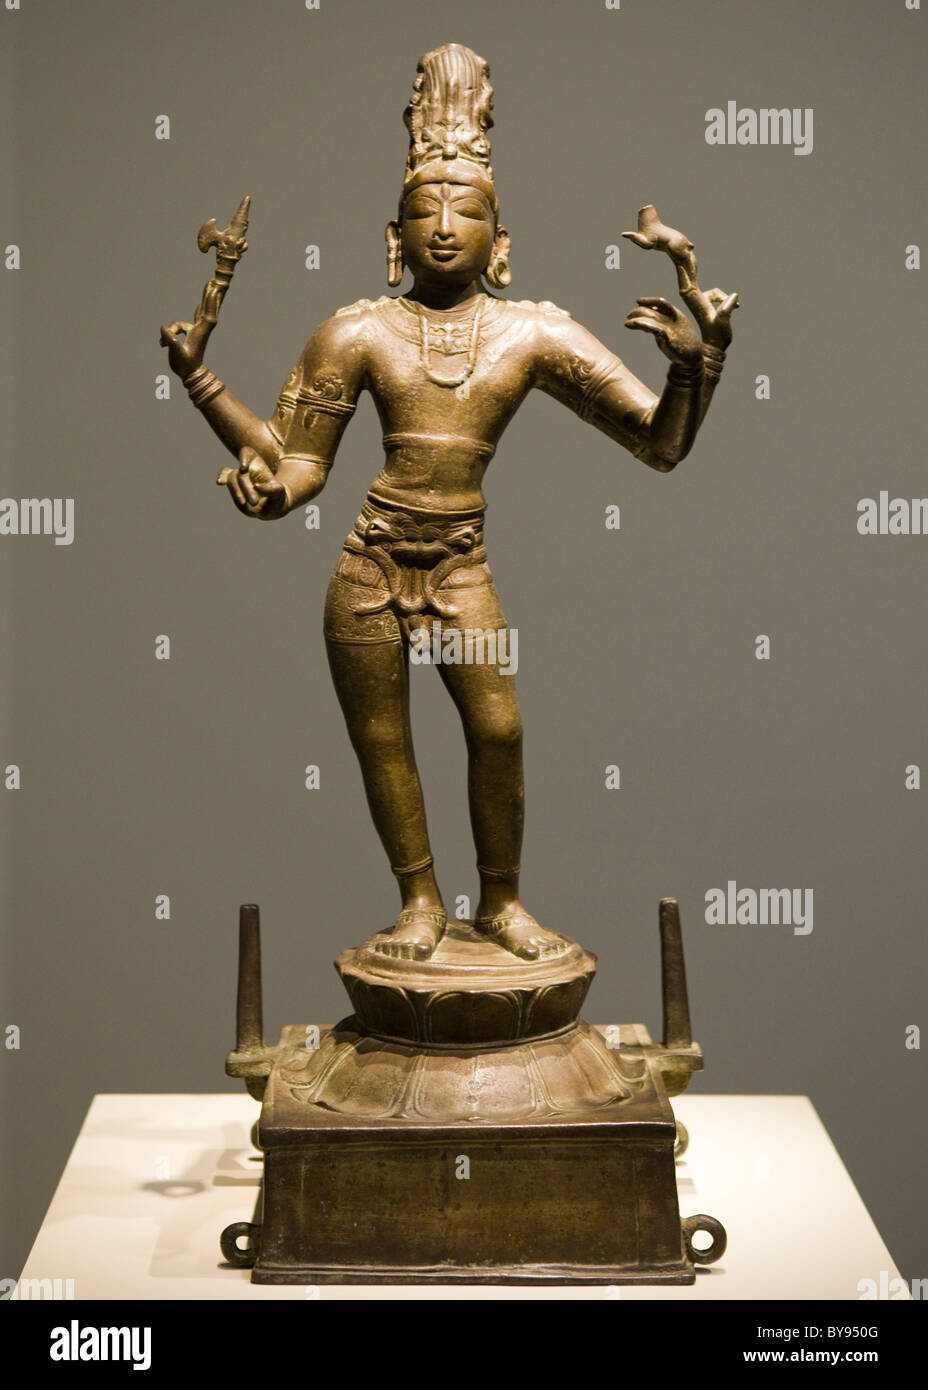 Bronze sculpture of Shiva Vinadhara - India, ca/ 950 (Chola dynasty) - Stock Image